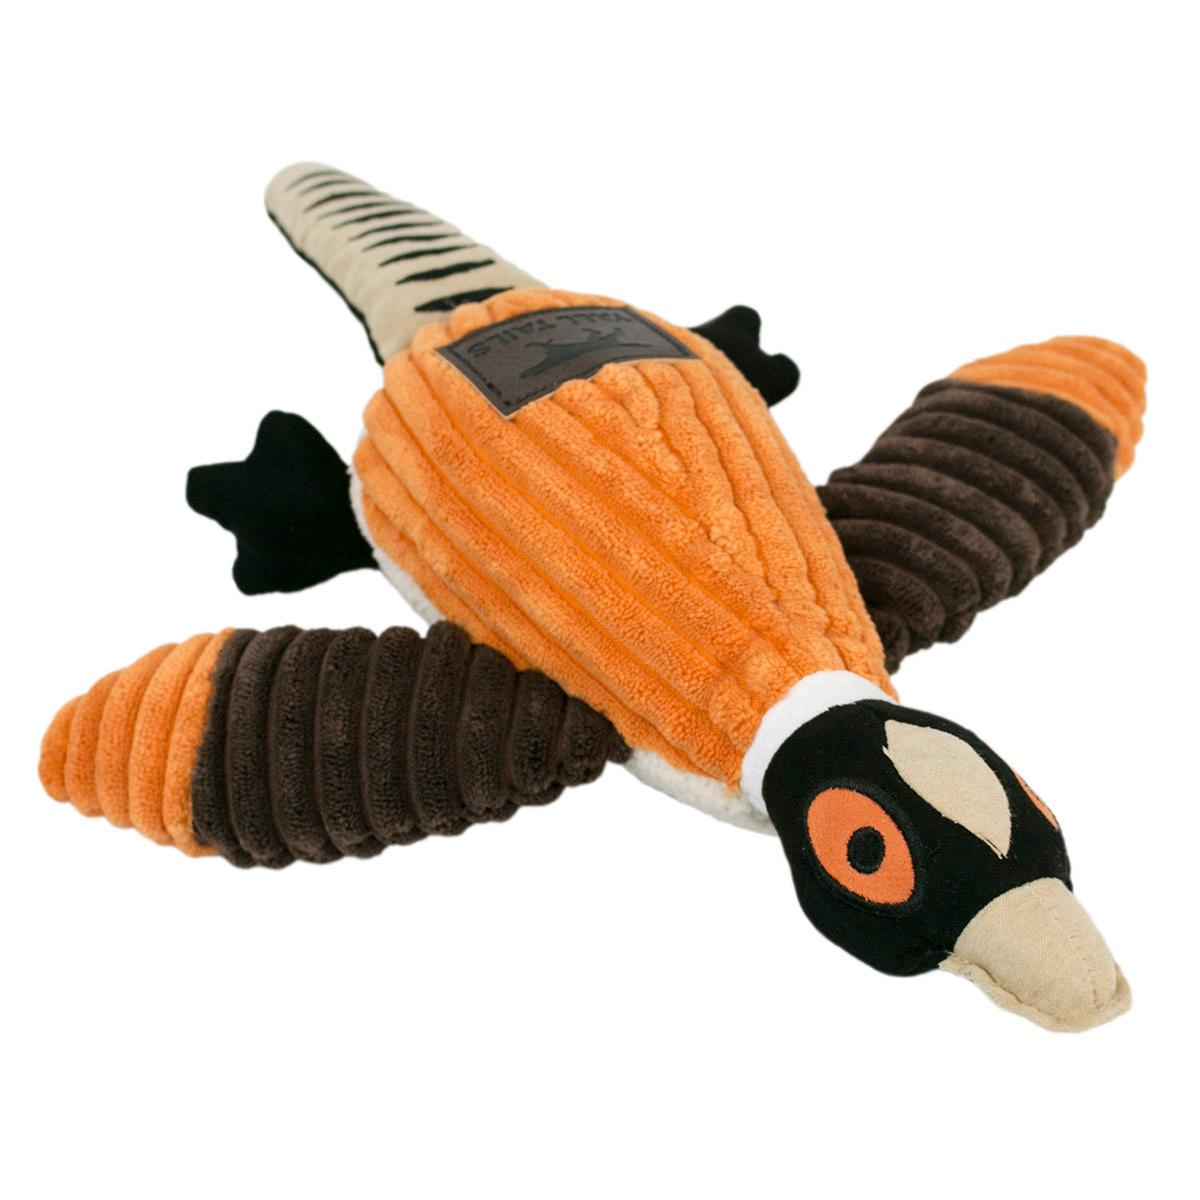 Tall Tails Plush Pheasant Dog Toy with Squeaker -16